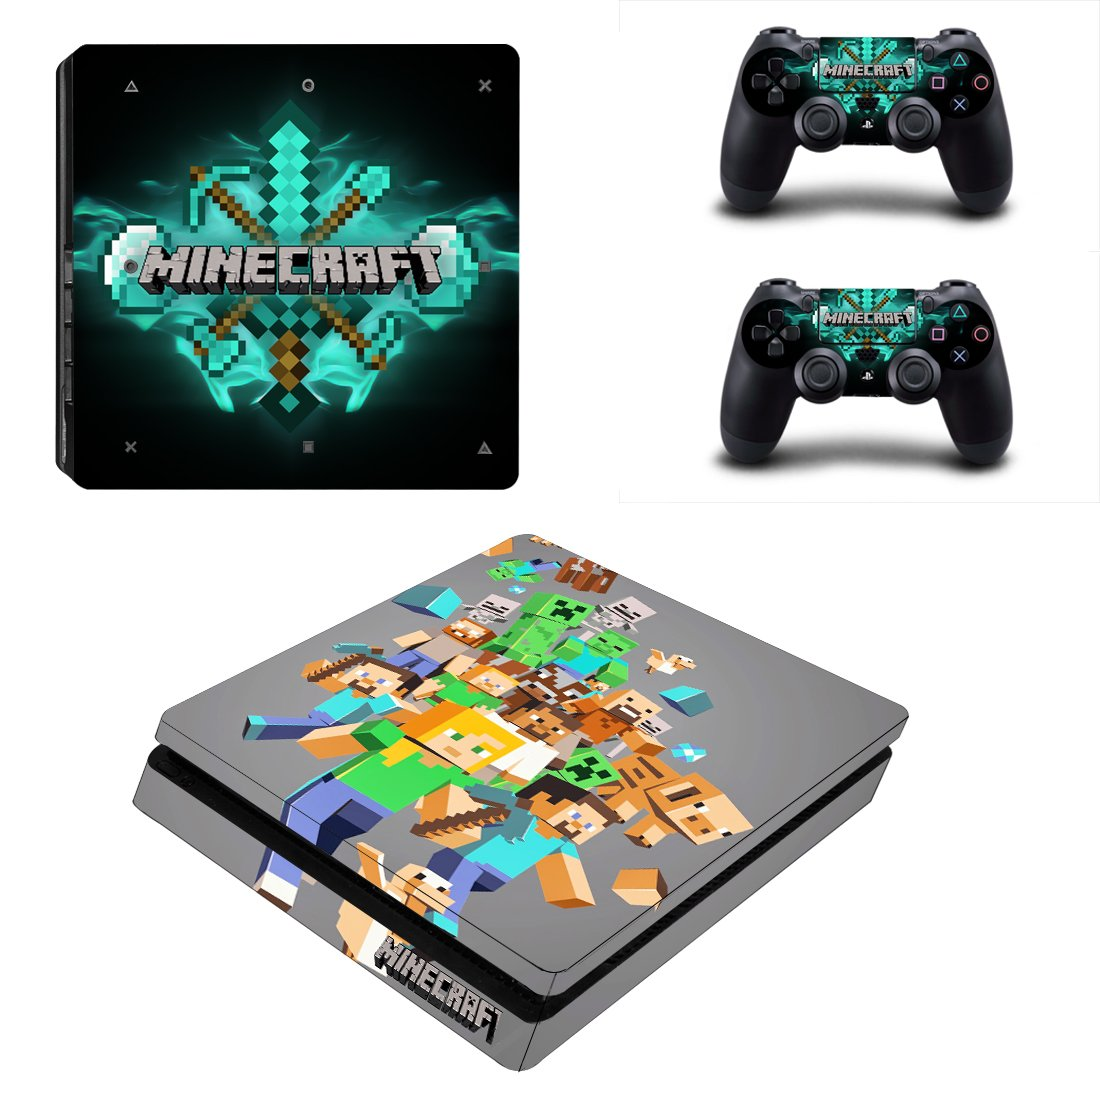 Minecraft PS4 Slim Skin Sticker Decals PS4 Console And Controllers Protect Your PS4